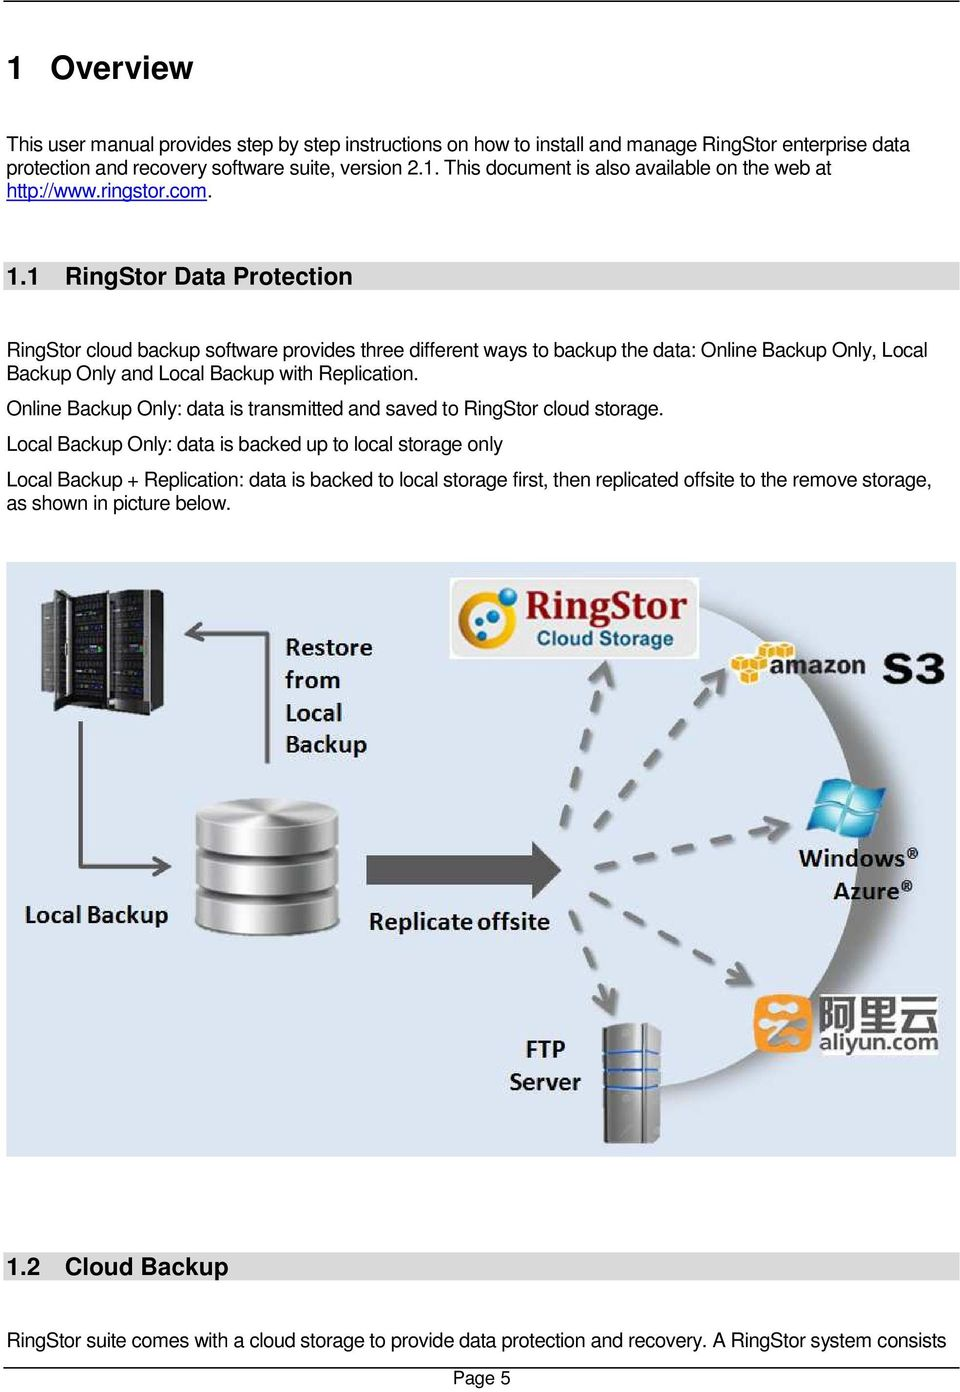 Online Backup Only: data is transmitted and saved to RingStor cloud storage.